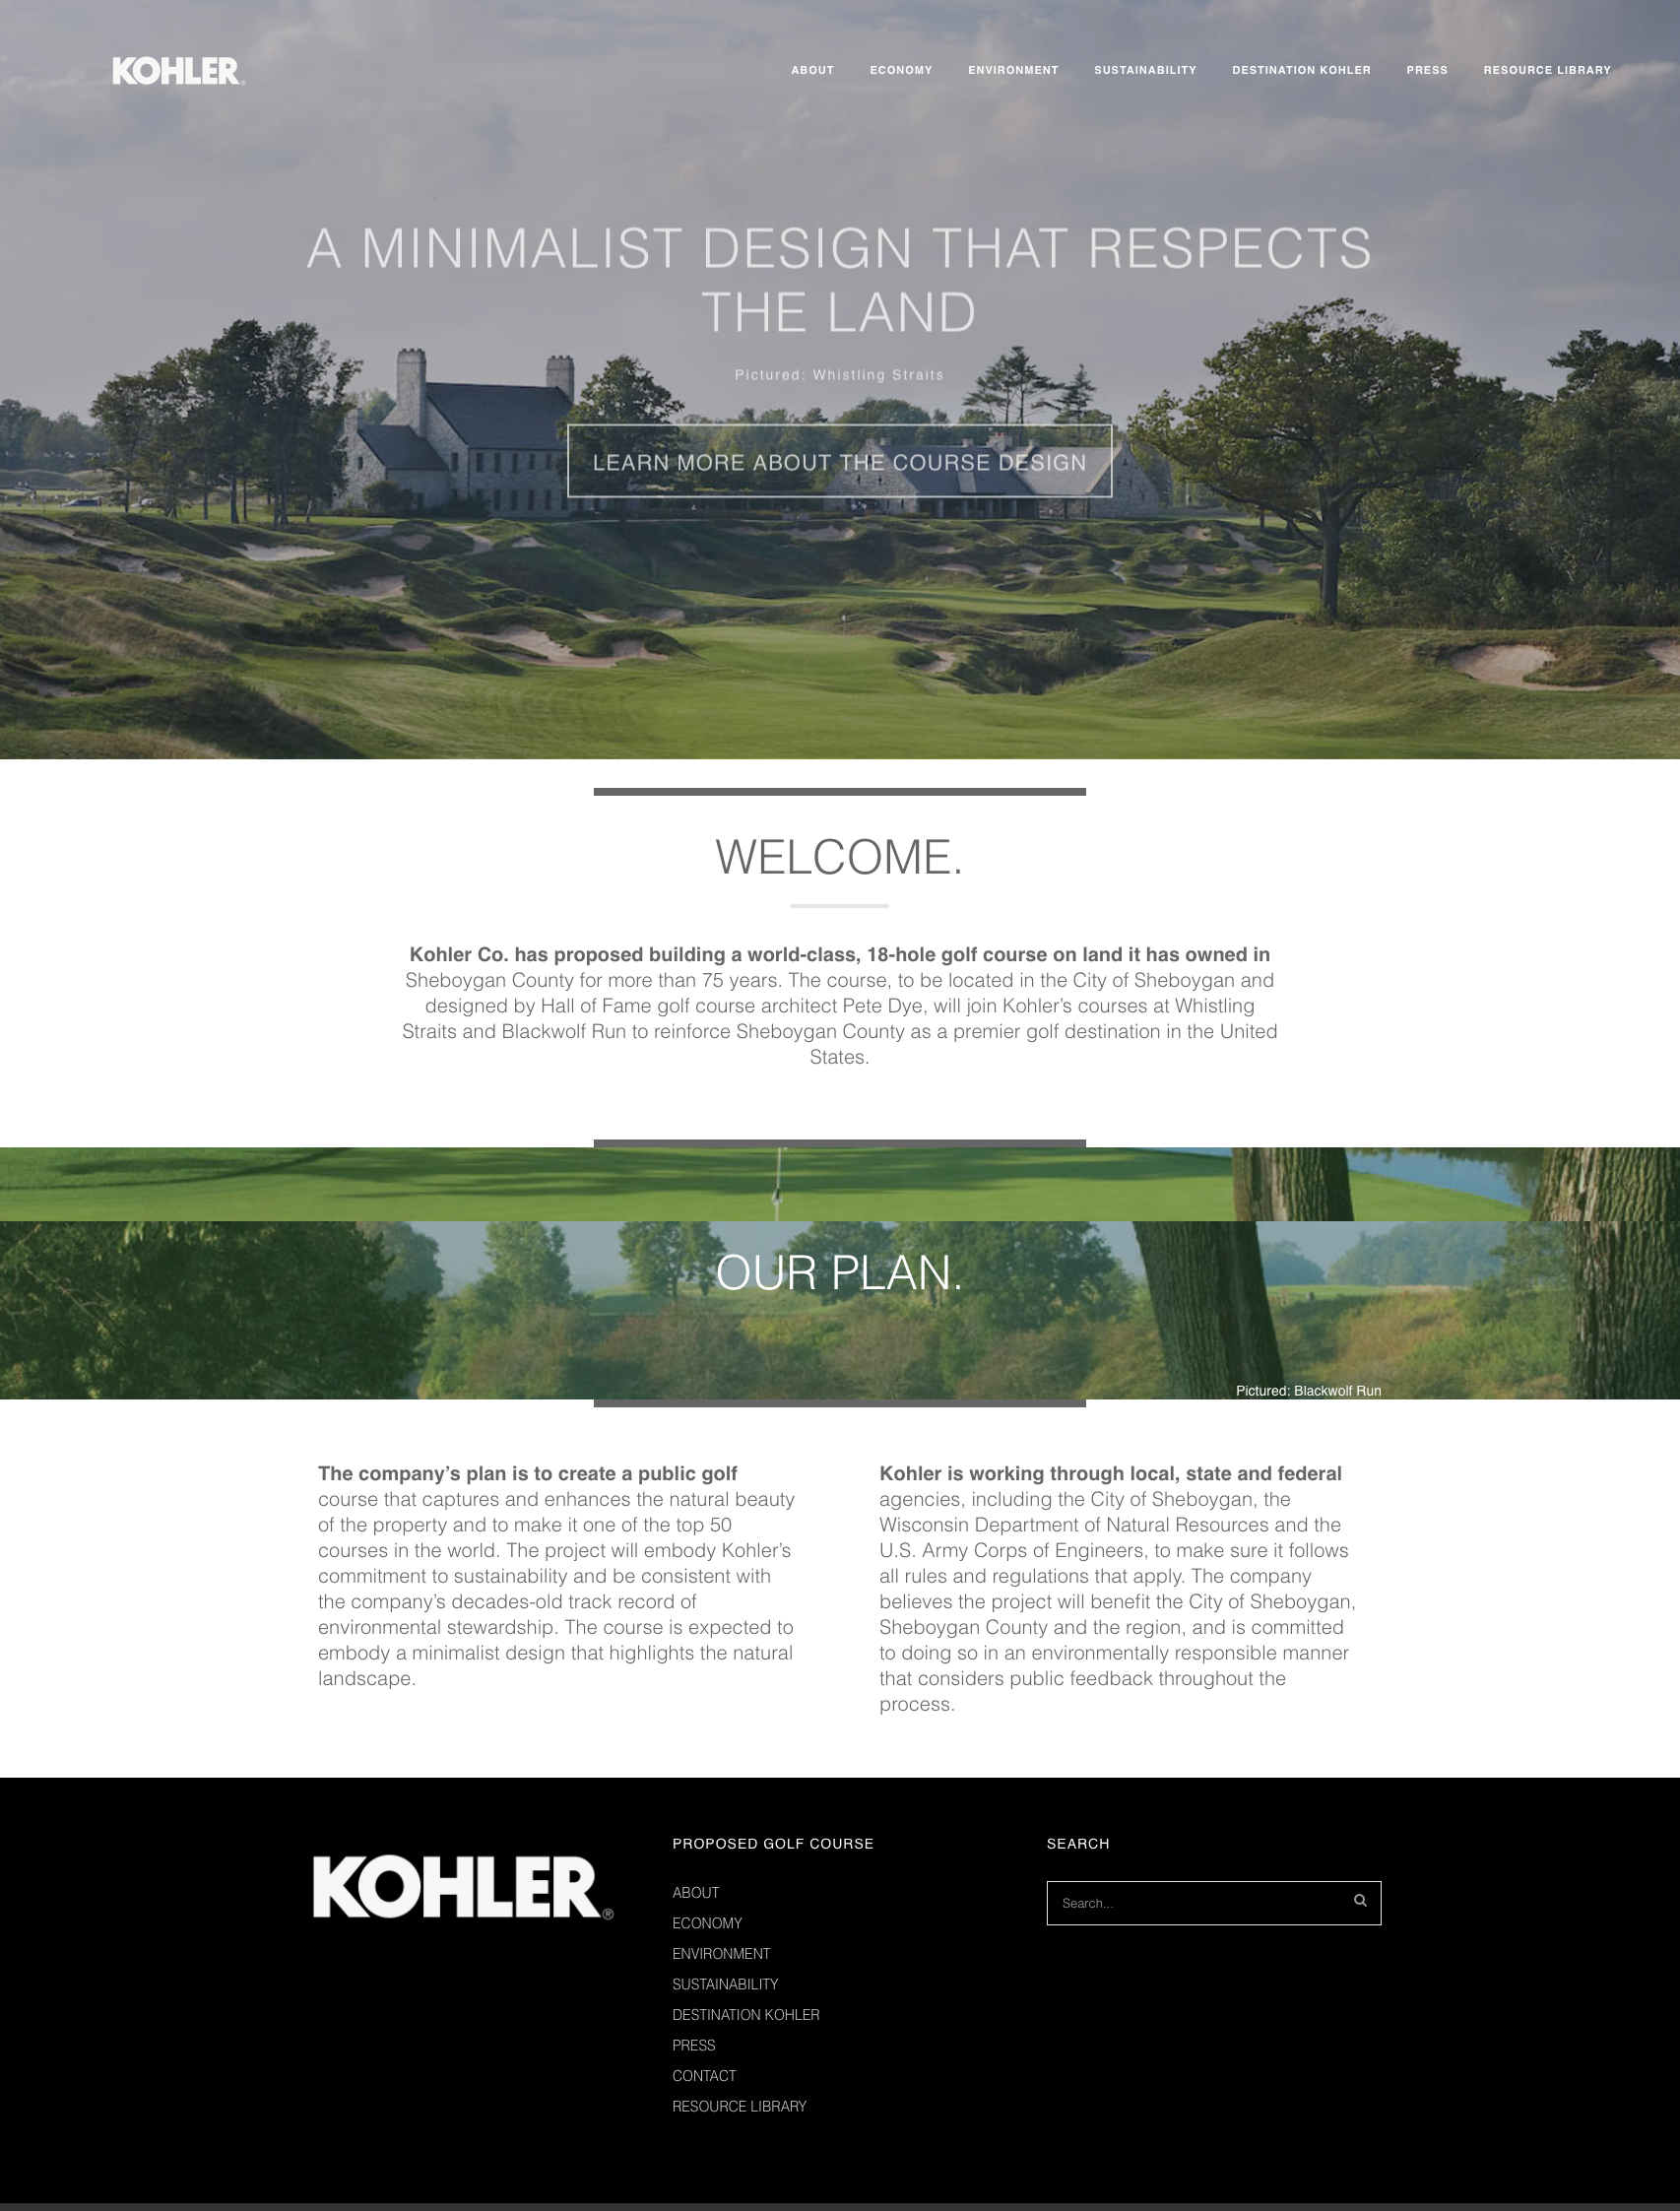 screencapture-proposedgolfcourse-1506368462256.png